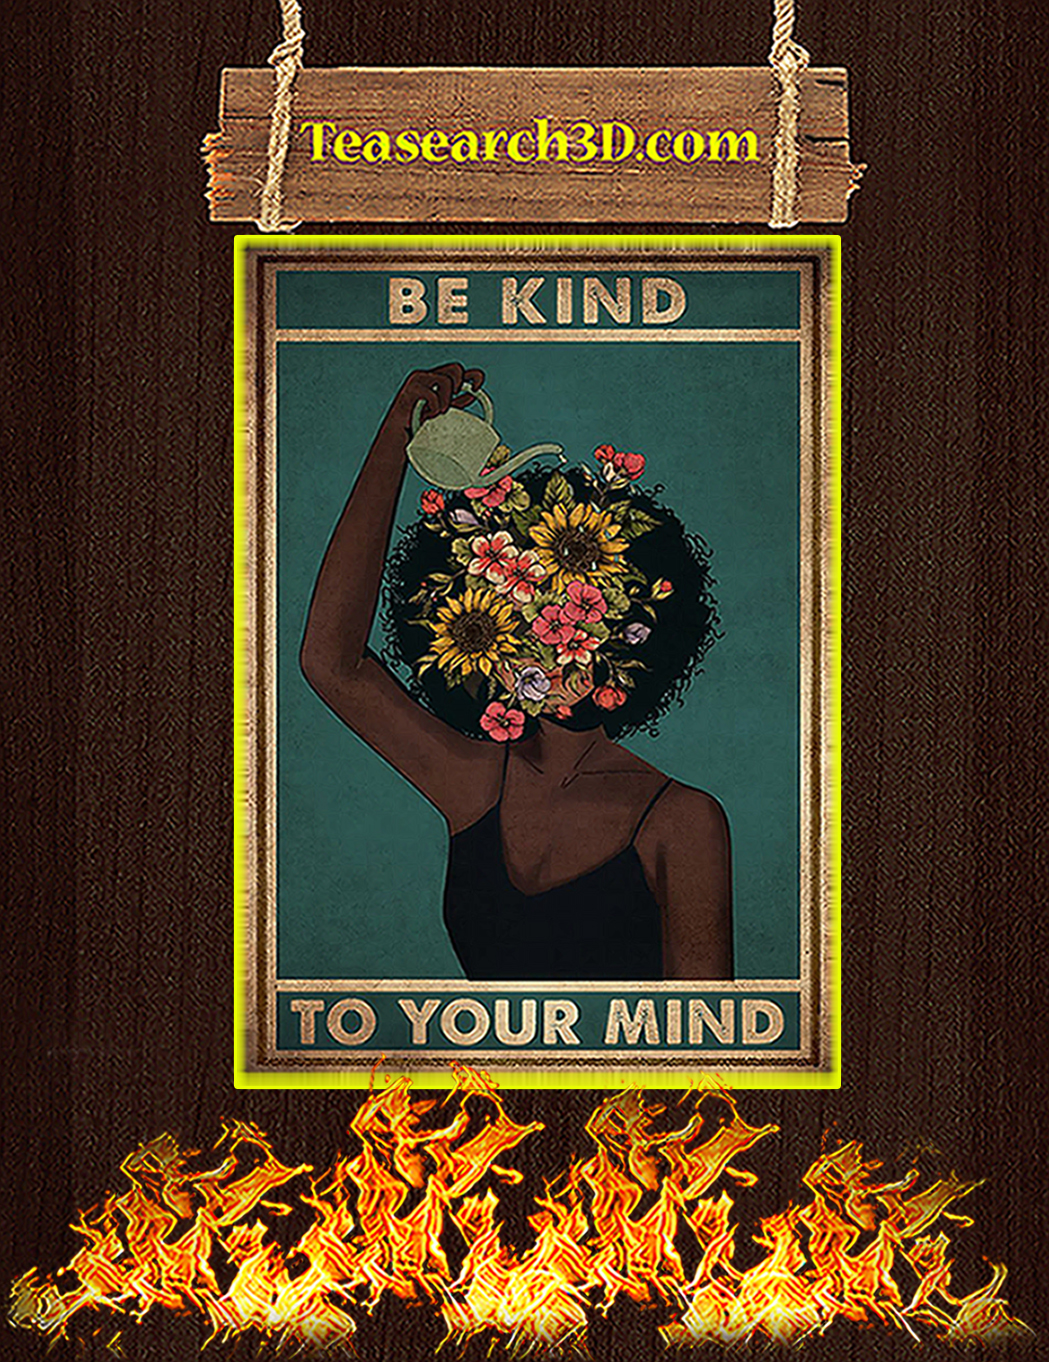 Black girl mental be kind to your mind mental poster A1